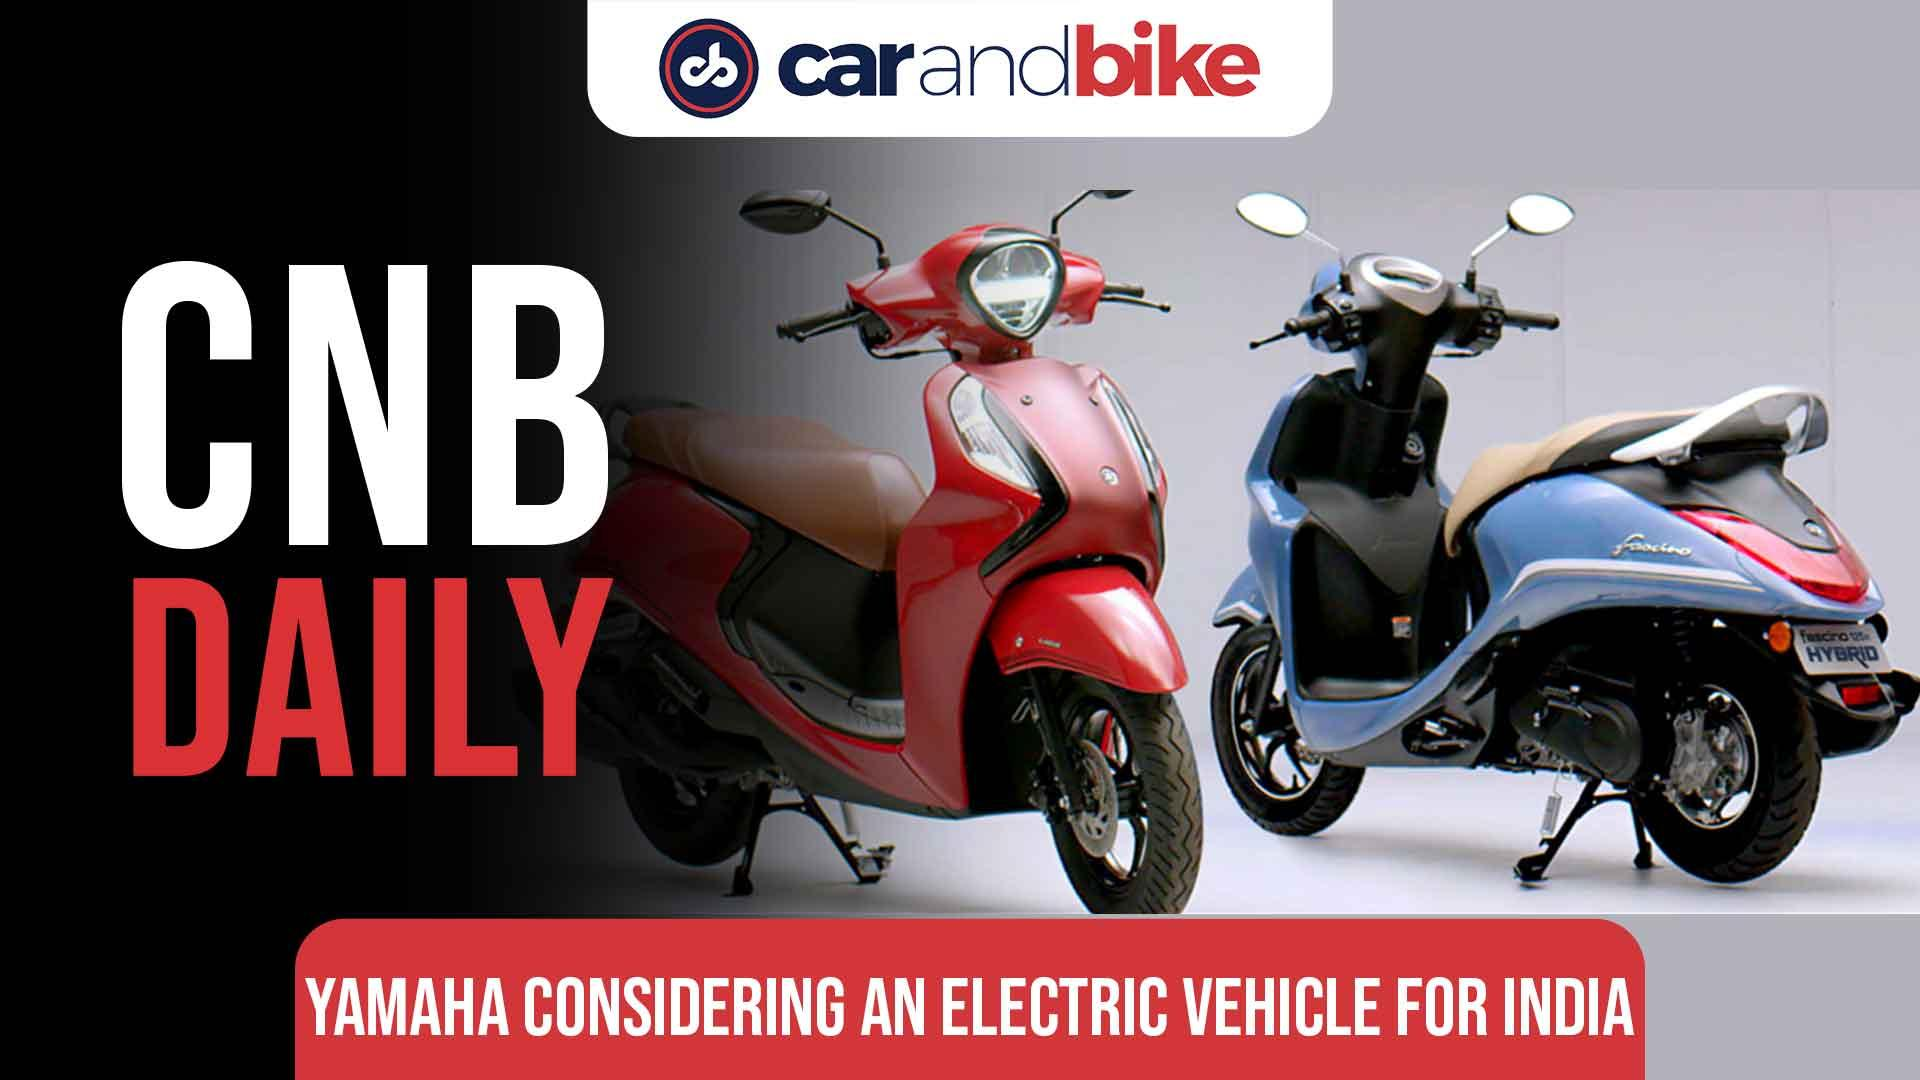 Yamaha considering an electric vehicle for India